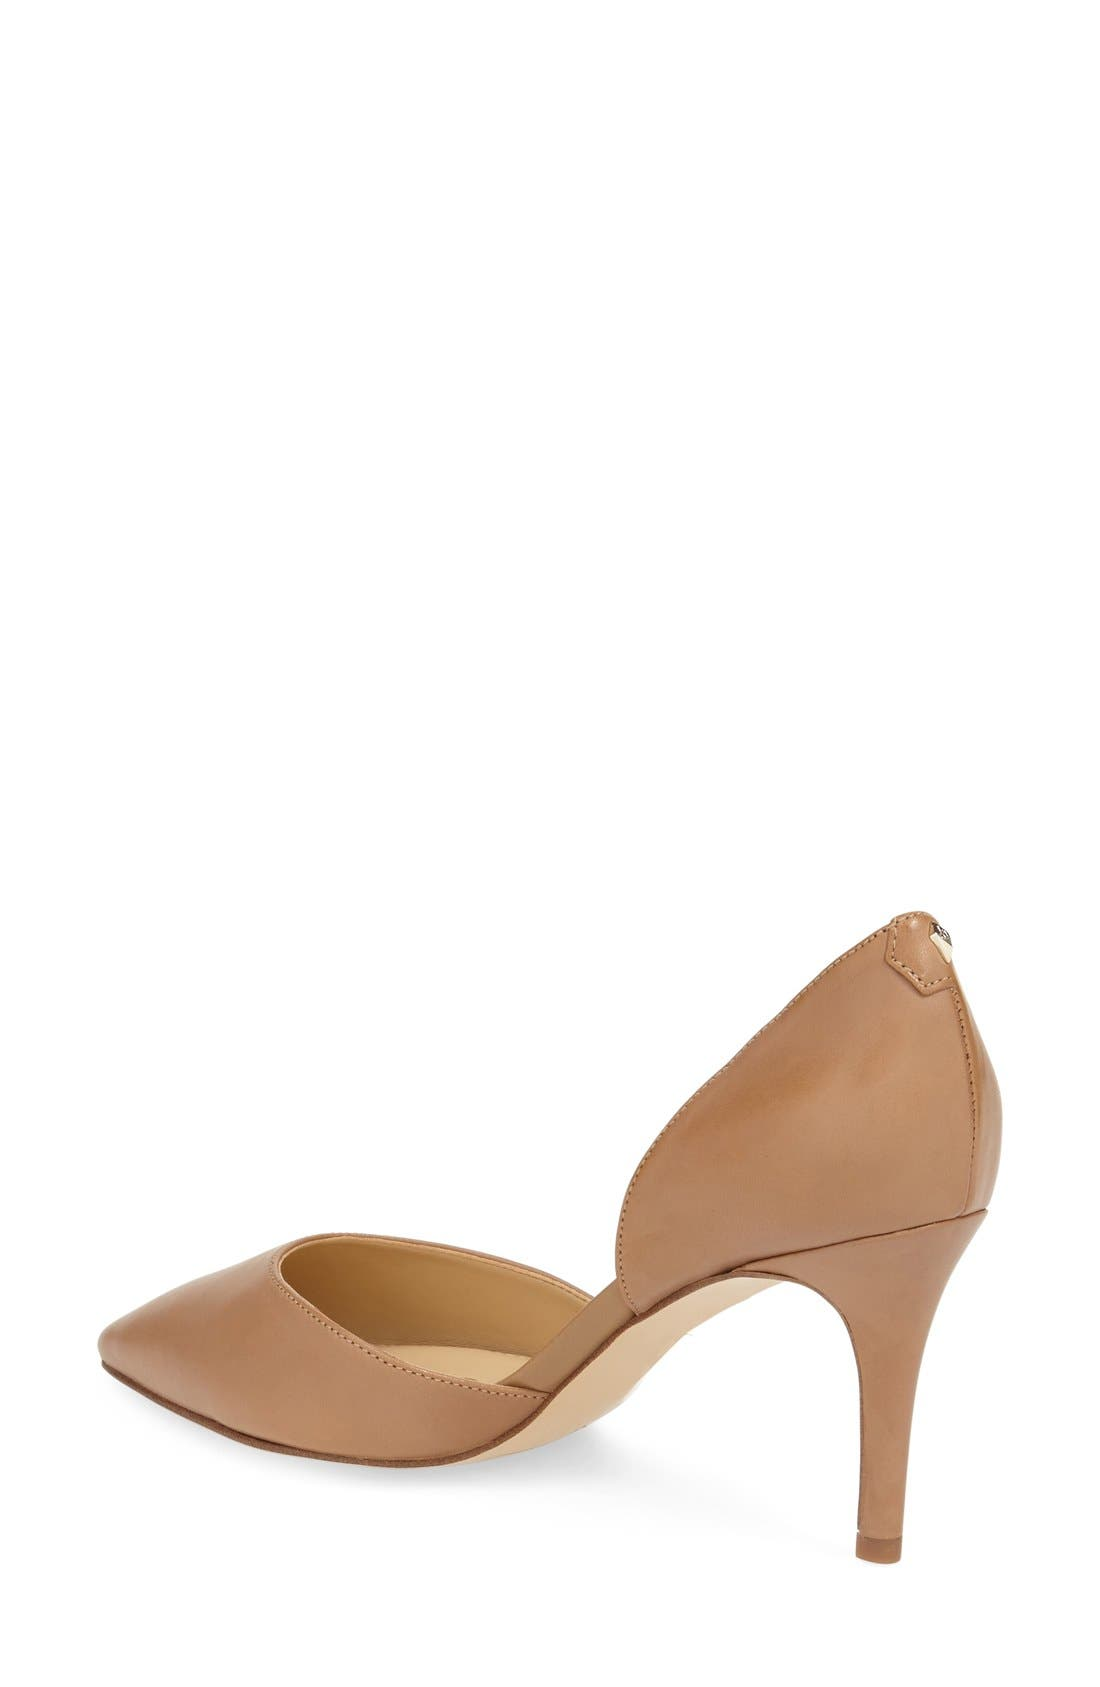 'Telsa' d'Orsay Pointy Toe Pump,                             Alternate thumbnail 43, color,